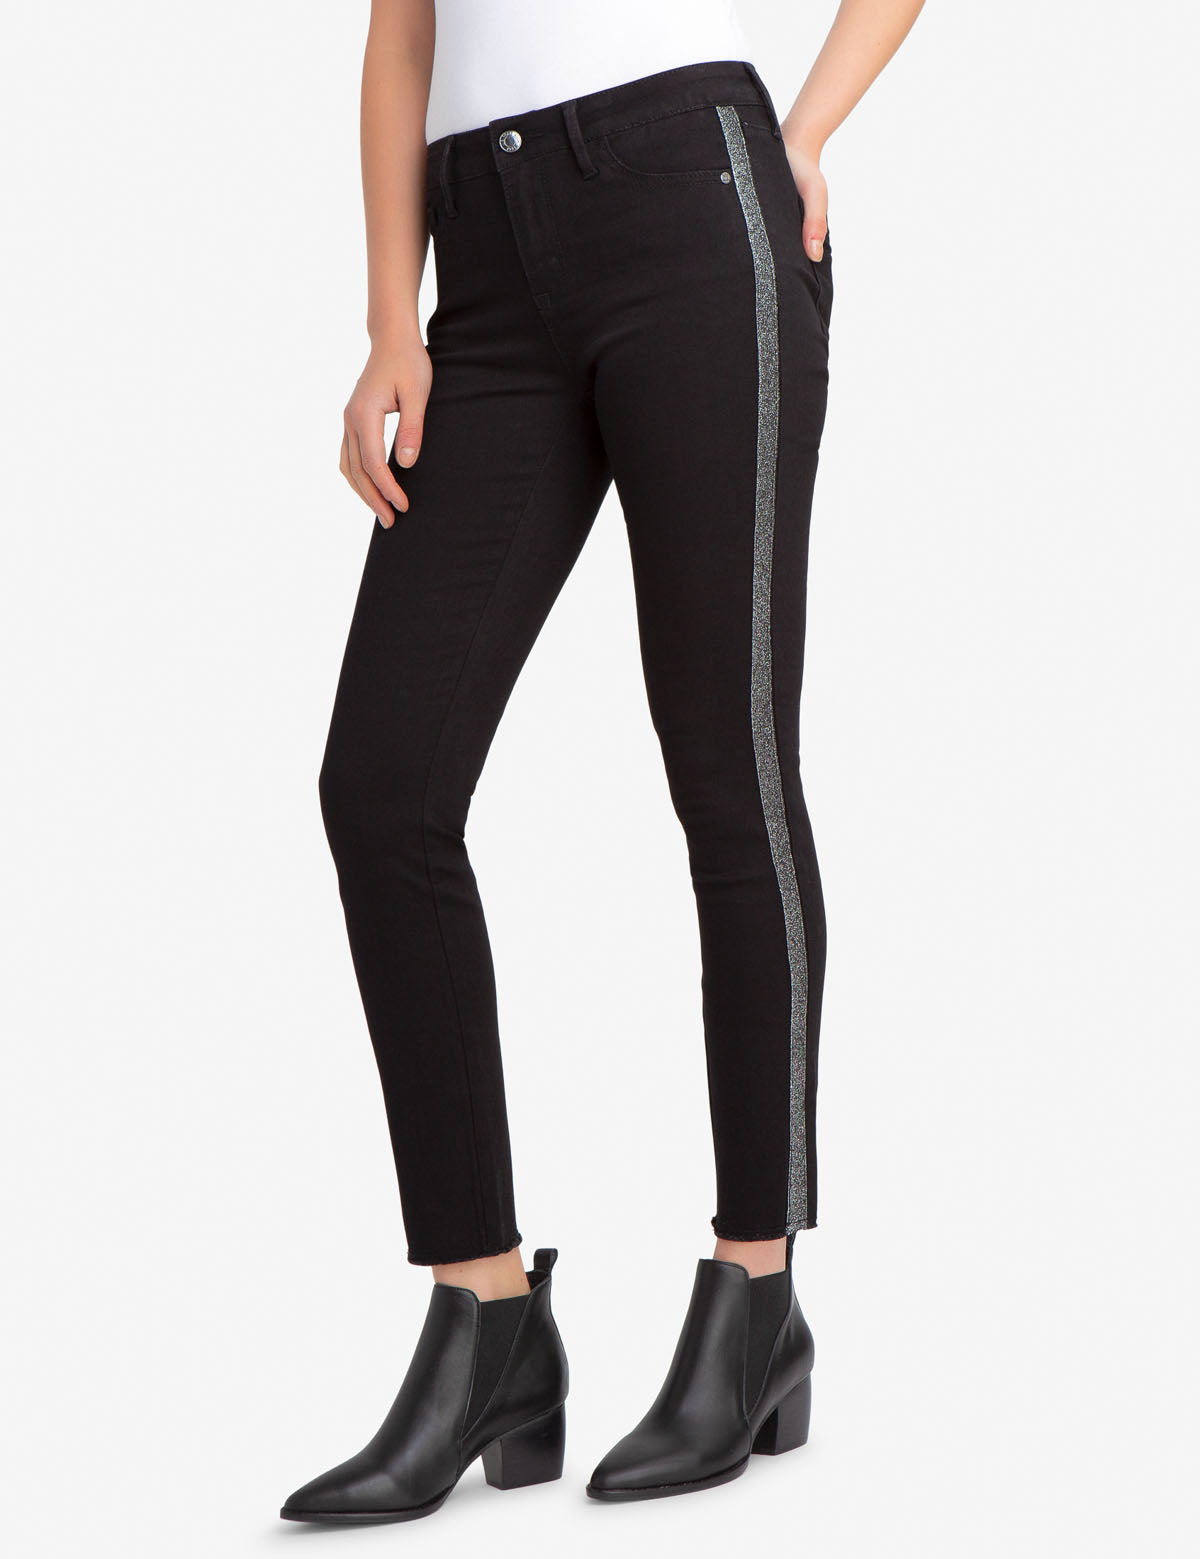 REPREVE® MID RISE SIDE BLING JEGGING - U.S. Polo Assn.